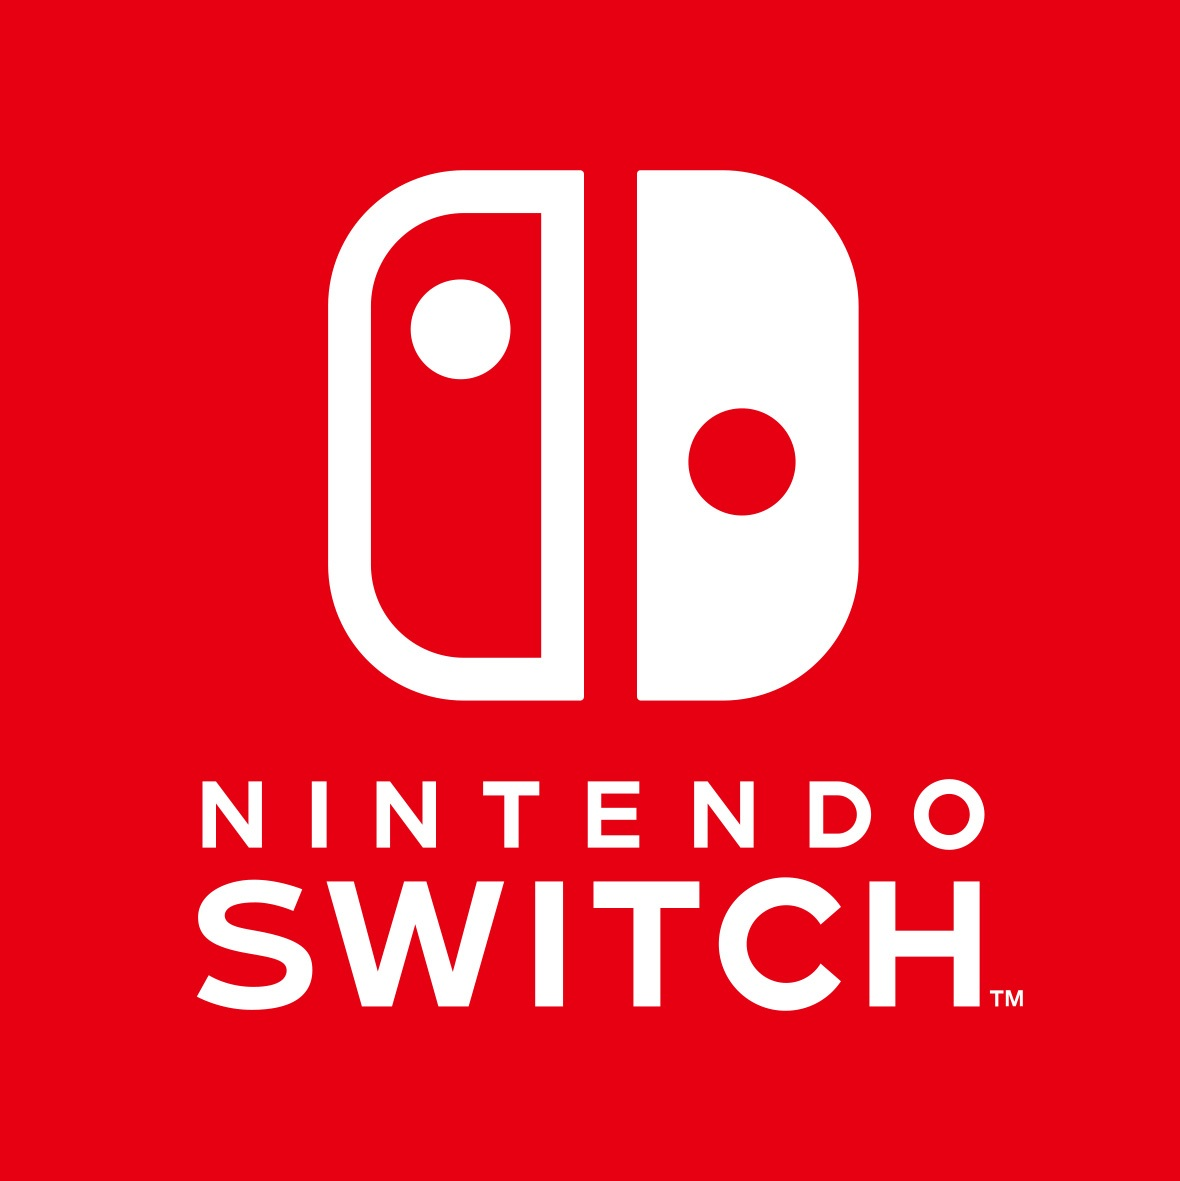 Is a Nintendo Switch Pro coming?